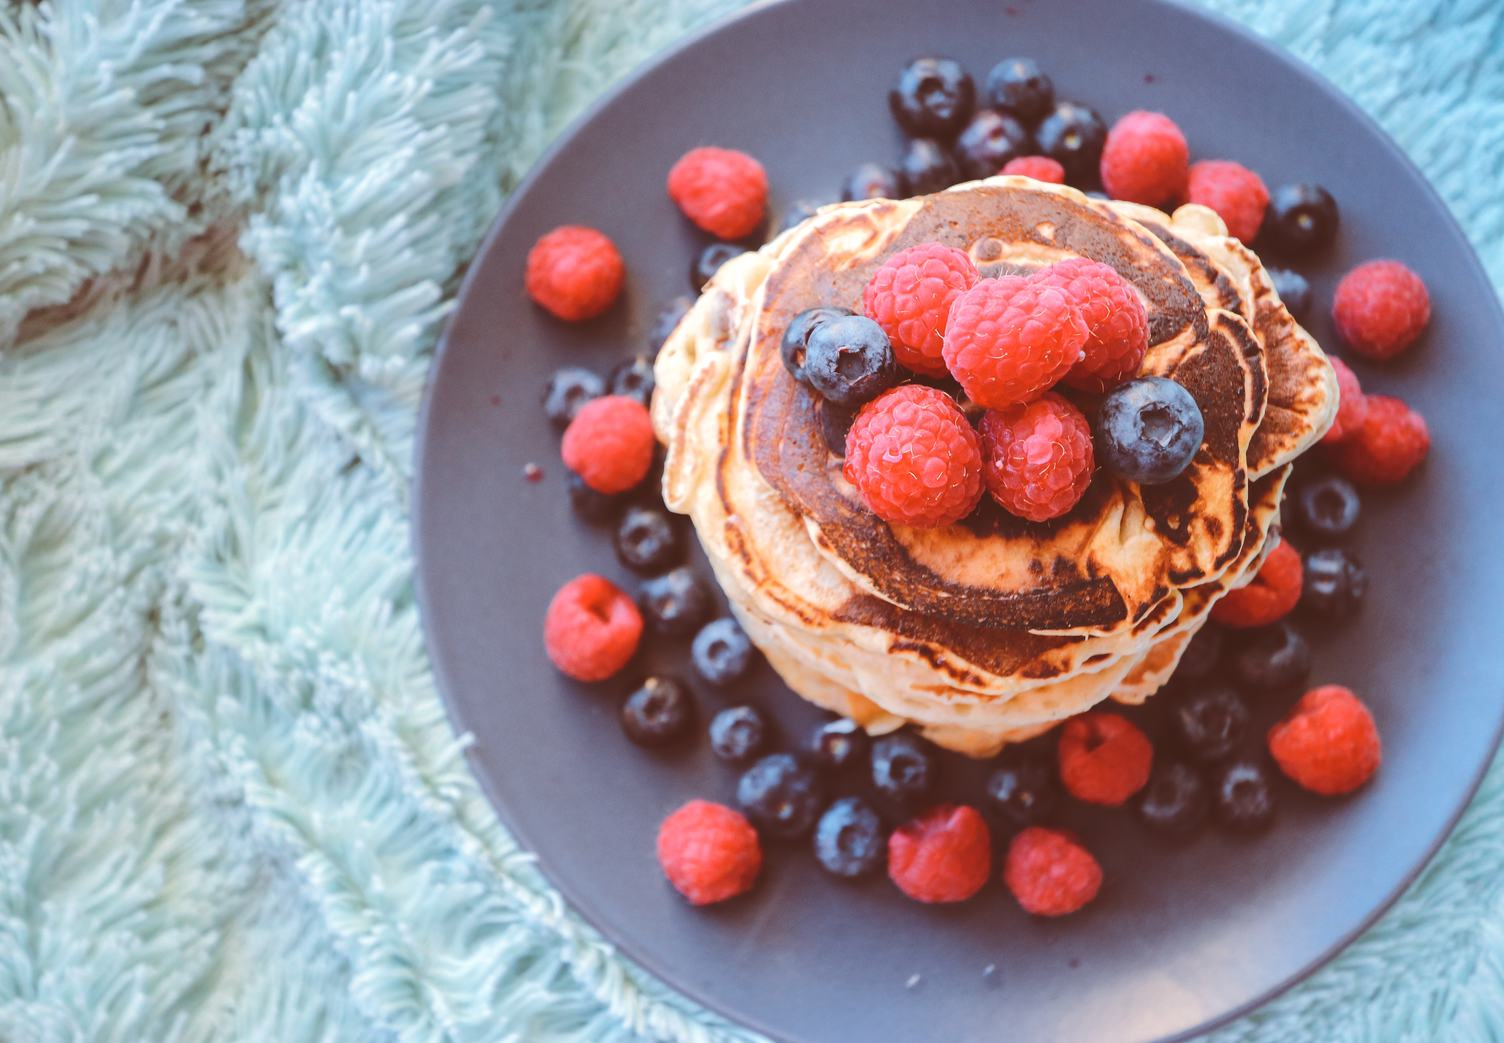 Pancakes with Blueberries and Raspberries on Black Plate